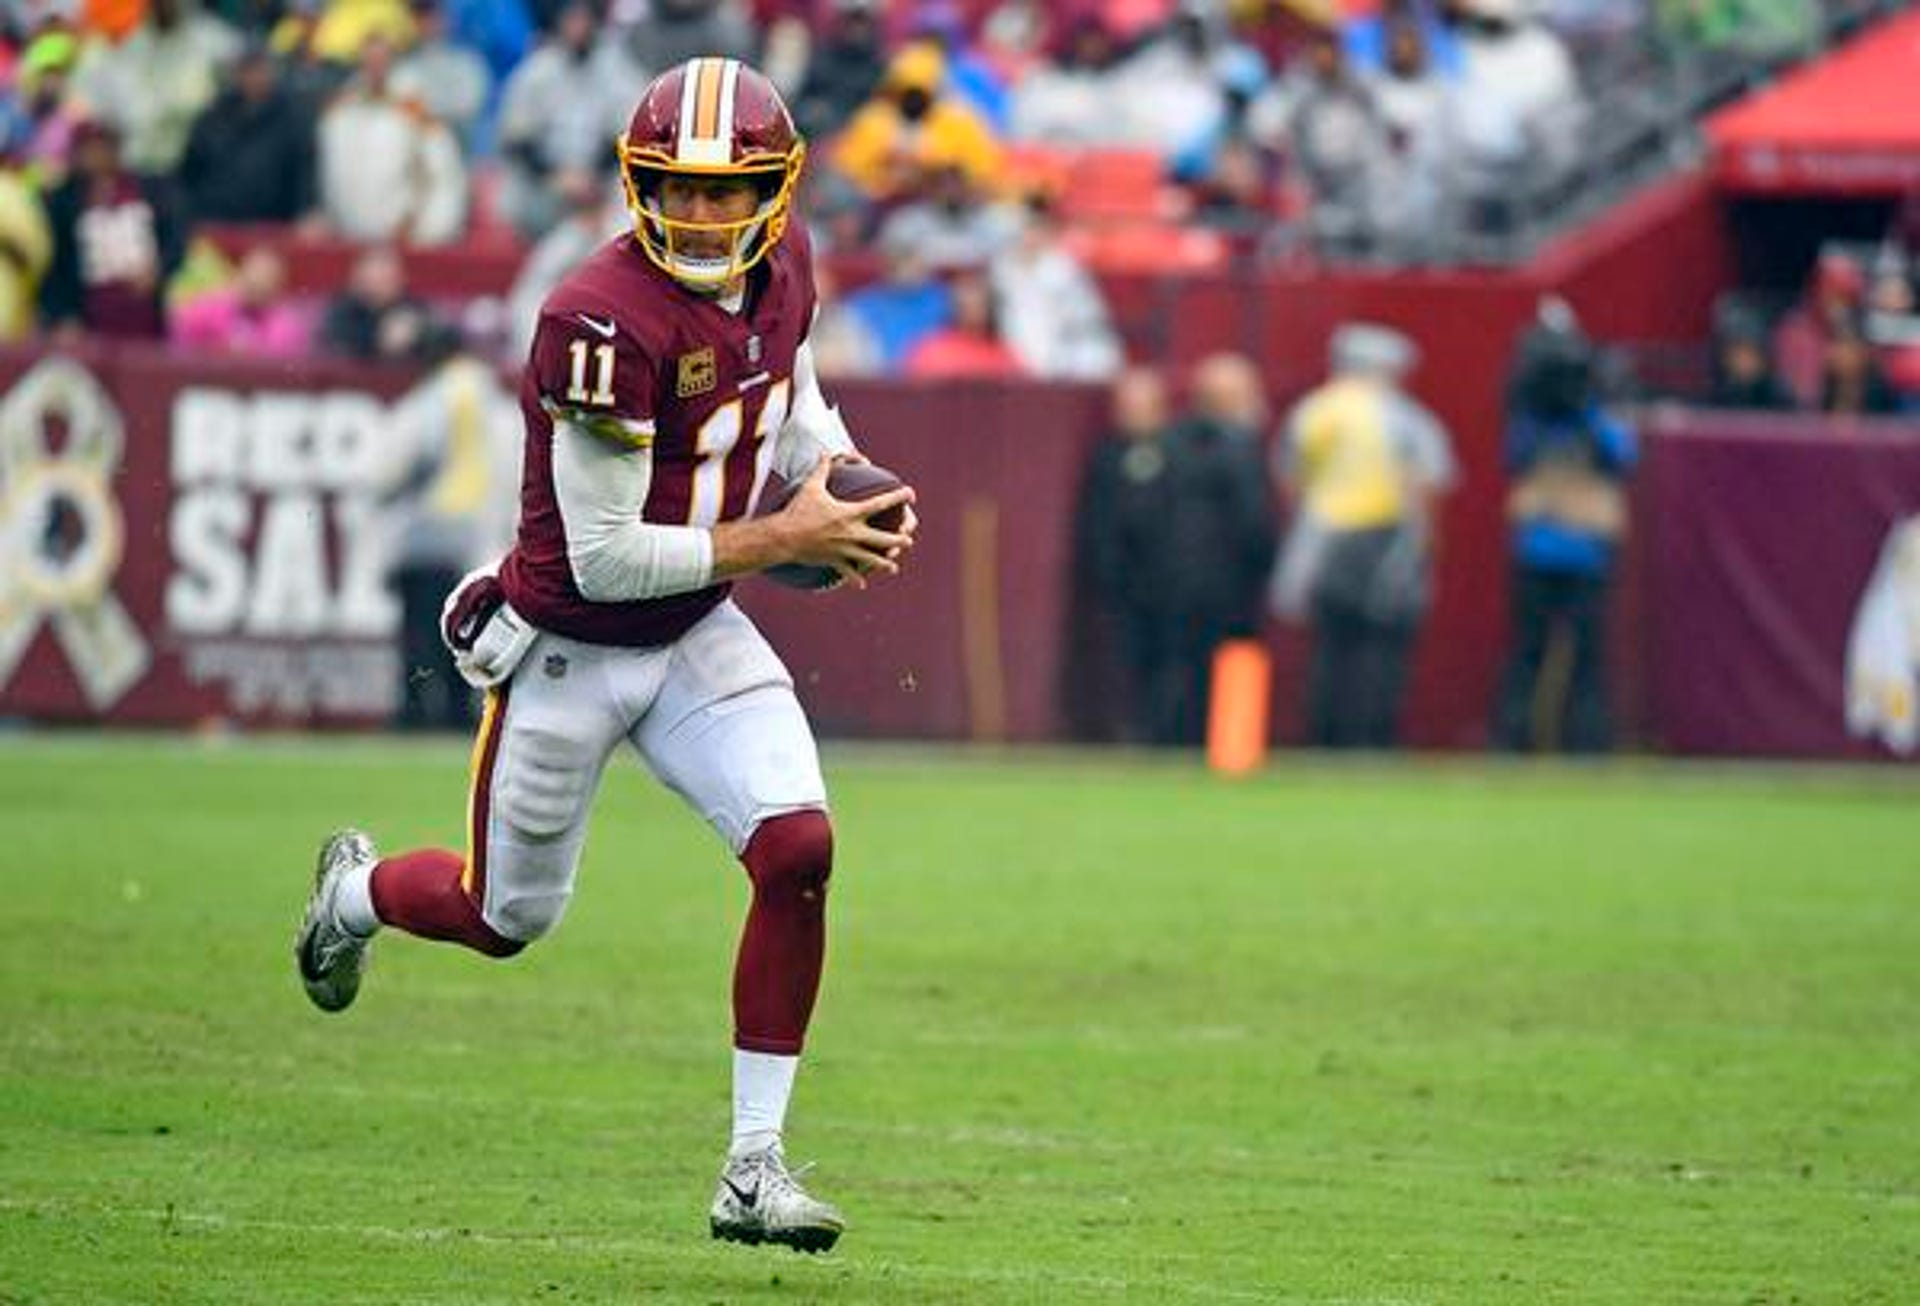 Sep 23, 2018; Landover, MD, USA; Washington Redskins quarterback Alex Smith (11) scrambles against the Green Bay Packers during the second half at FedEx Field. Mandatory Credit: Brad Mills-USA TODAY Sports